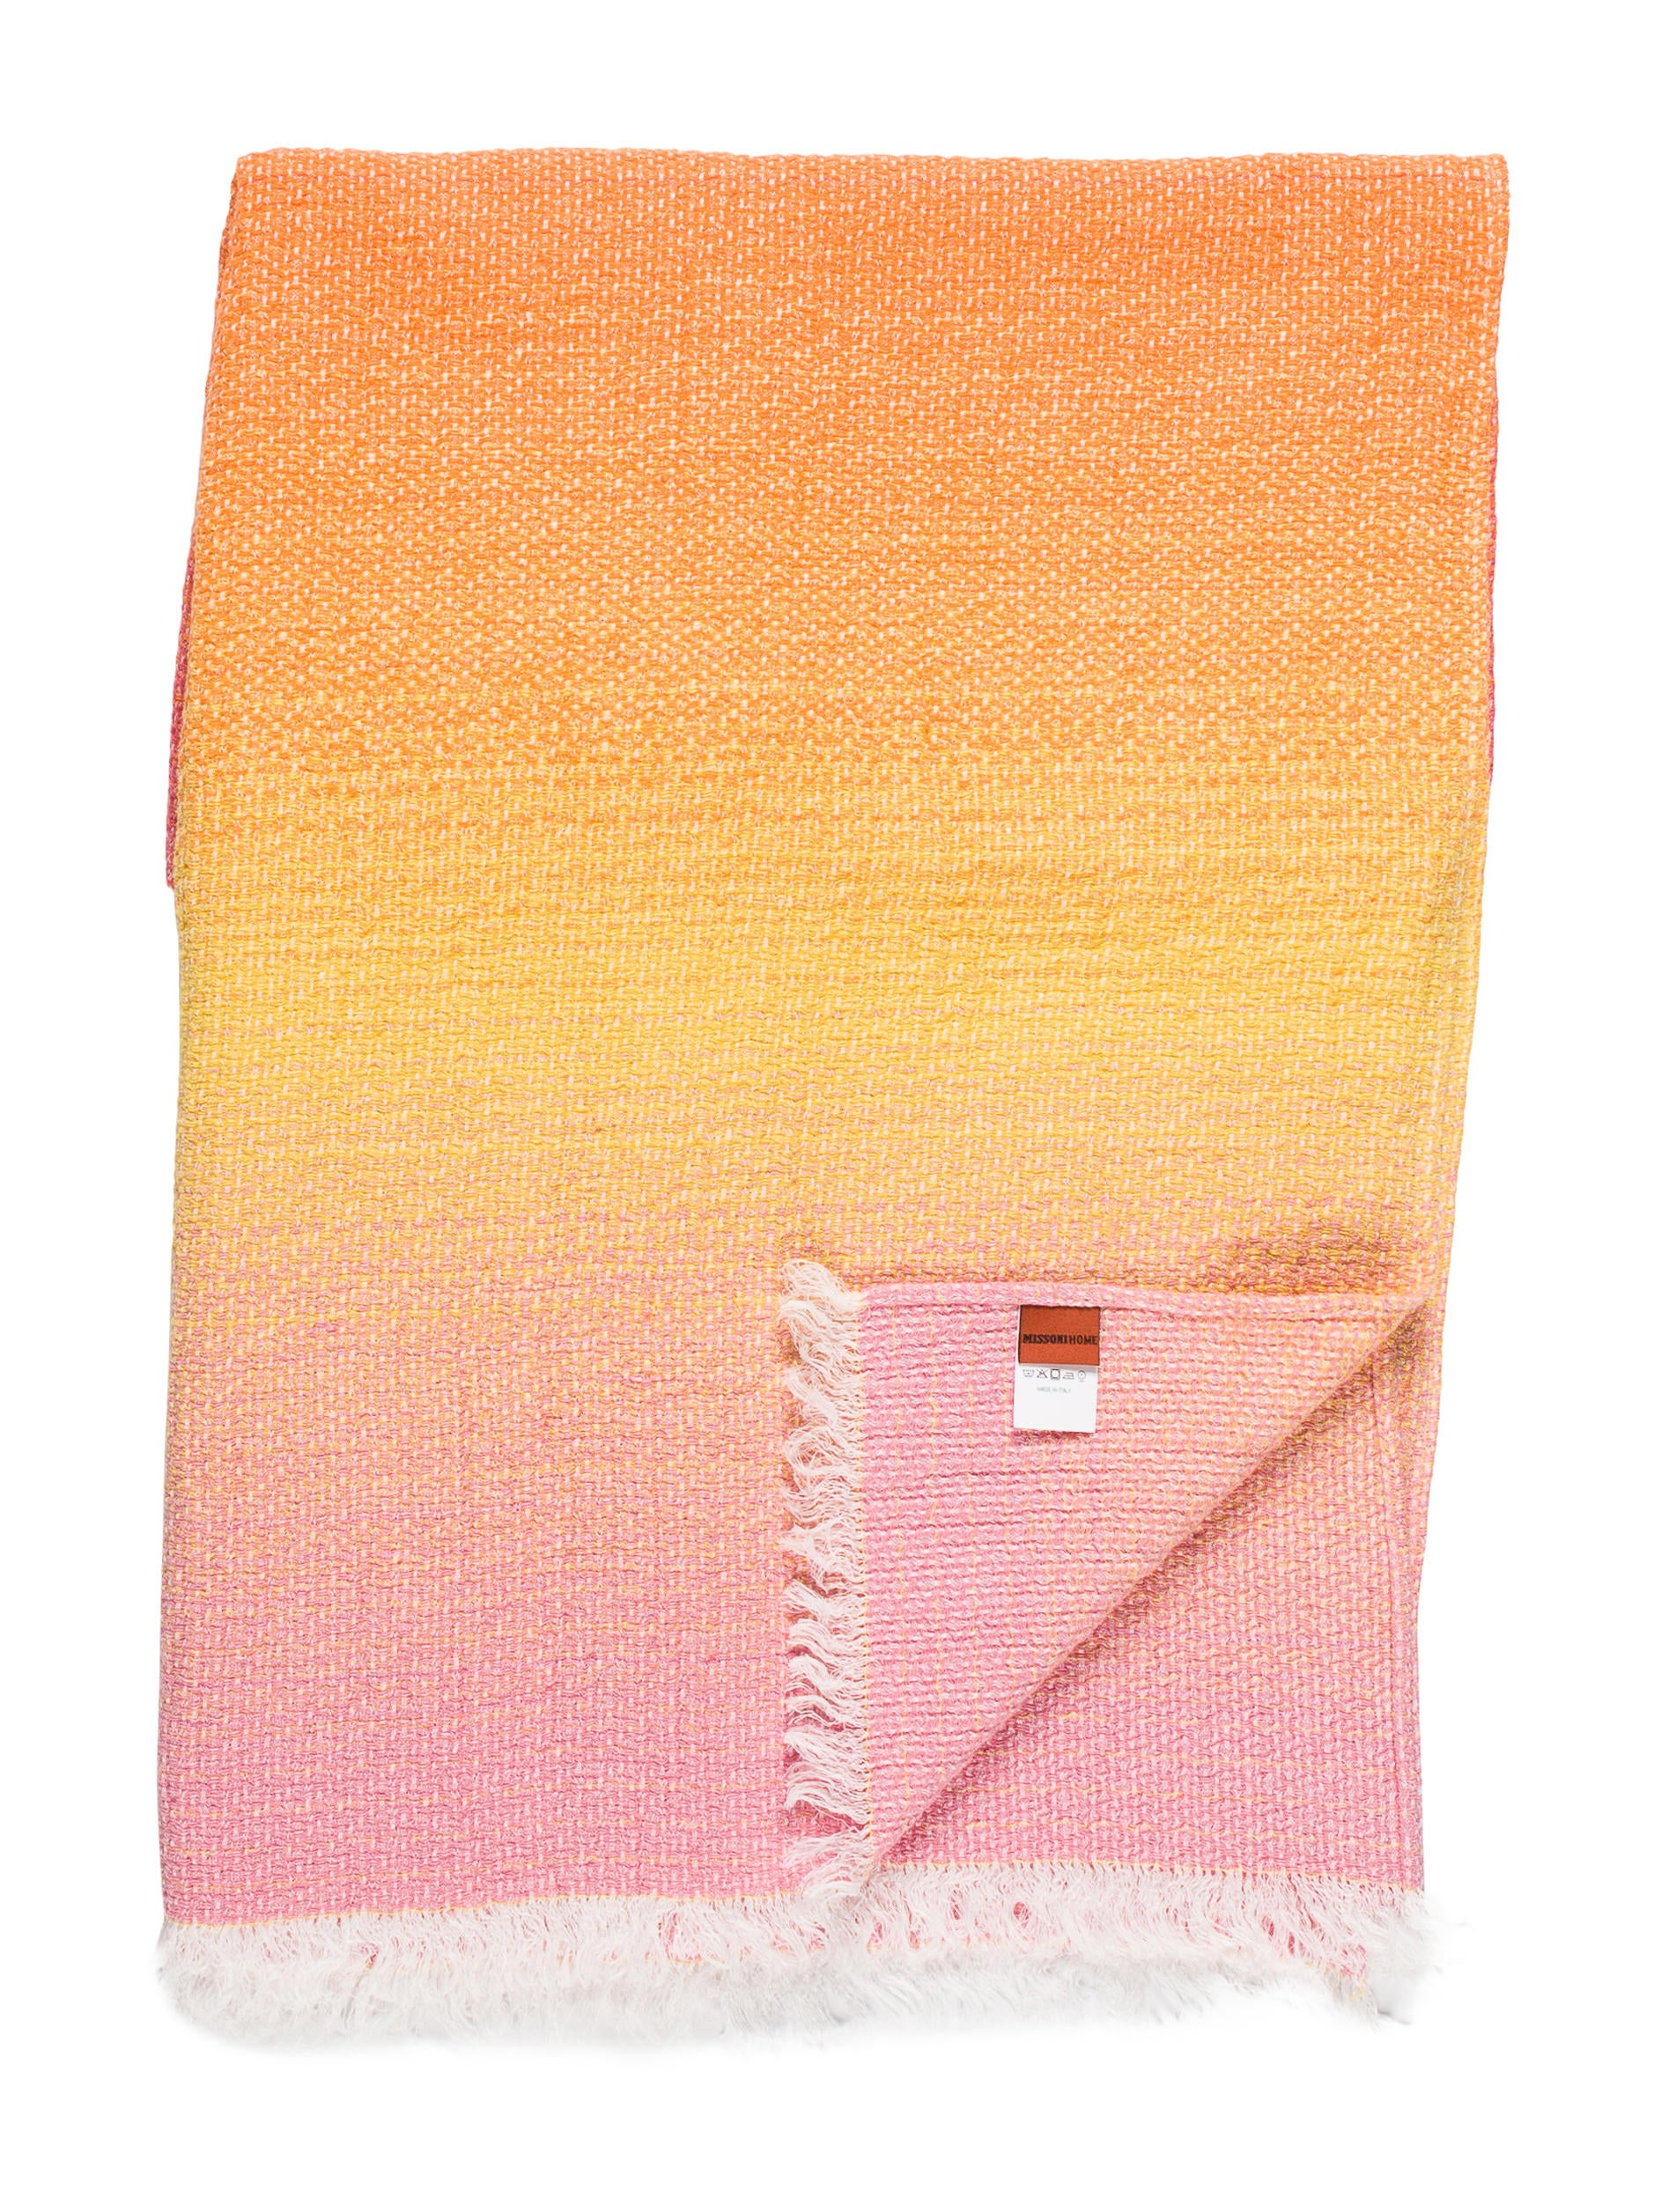 Missoni Sven Throw Blanket - Pillows And Throws - MIS45889 The RealReal